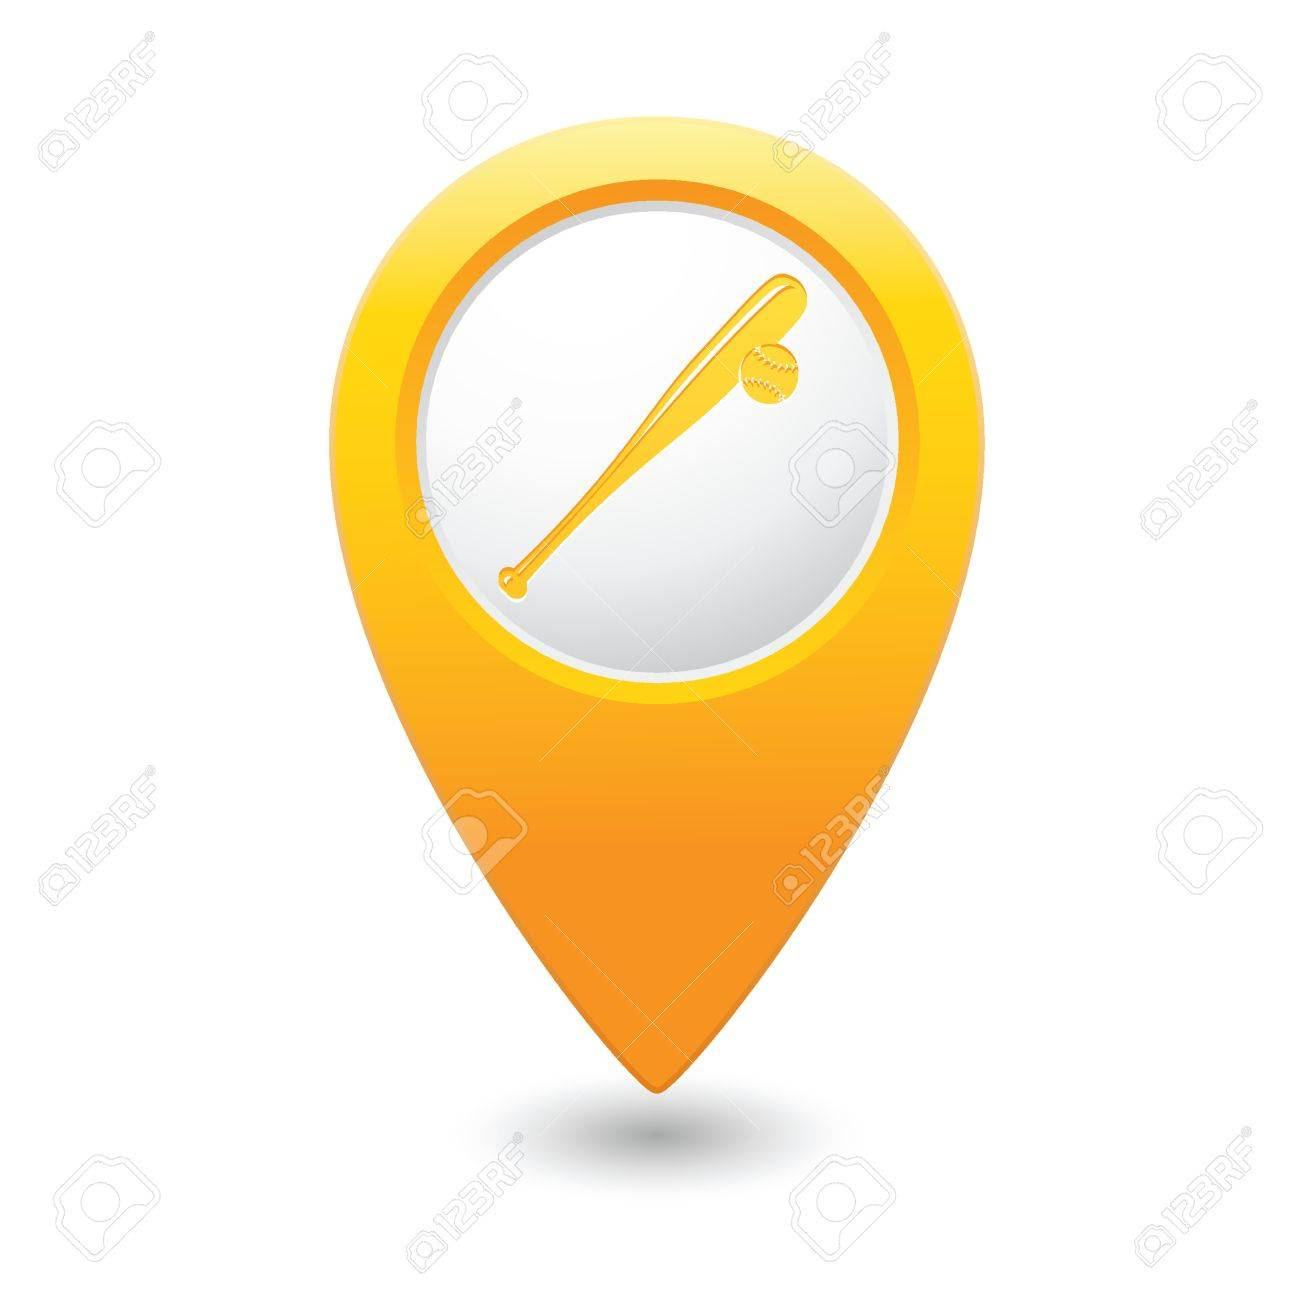 yellow map pointer with baseball icon royalty free cliparts